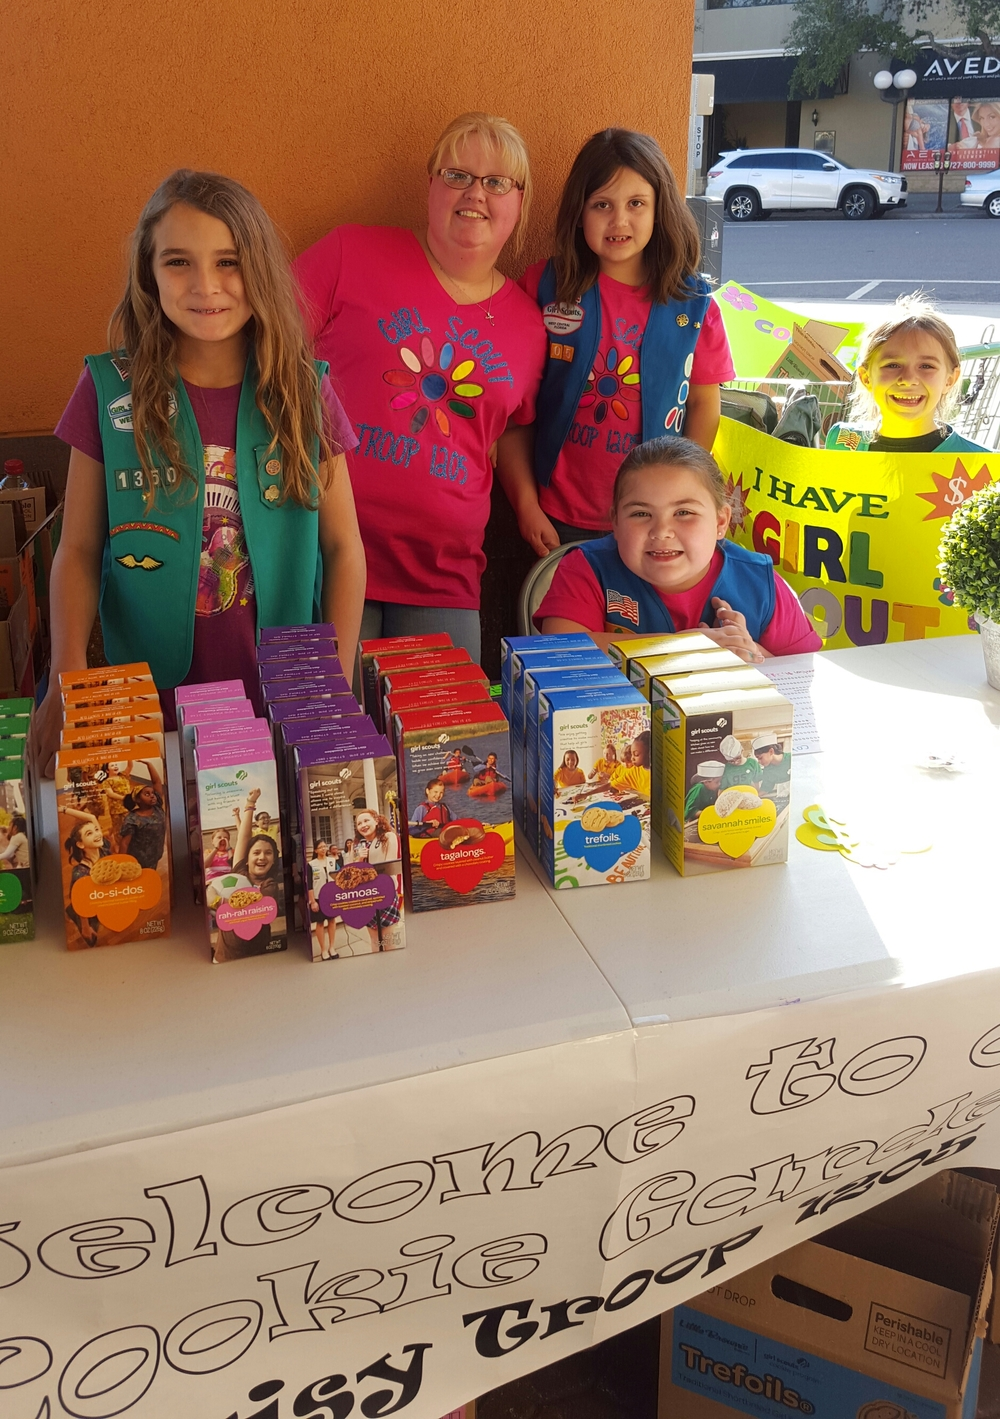 Anna (left, age 9) helped her sister, Kate (right, holding sign, age 6) at her first Girl Scout cookie booth. The troop will use a portion of their sales for community service. Anna's troop has been helping Pack a Sack and Kate's troop has been helping the Ronald McDonald House.